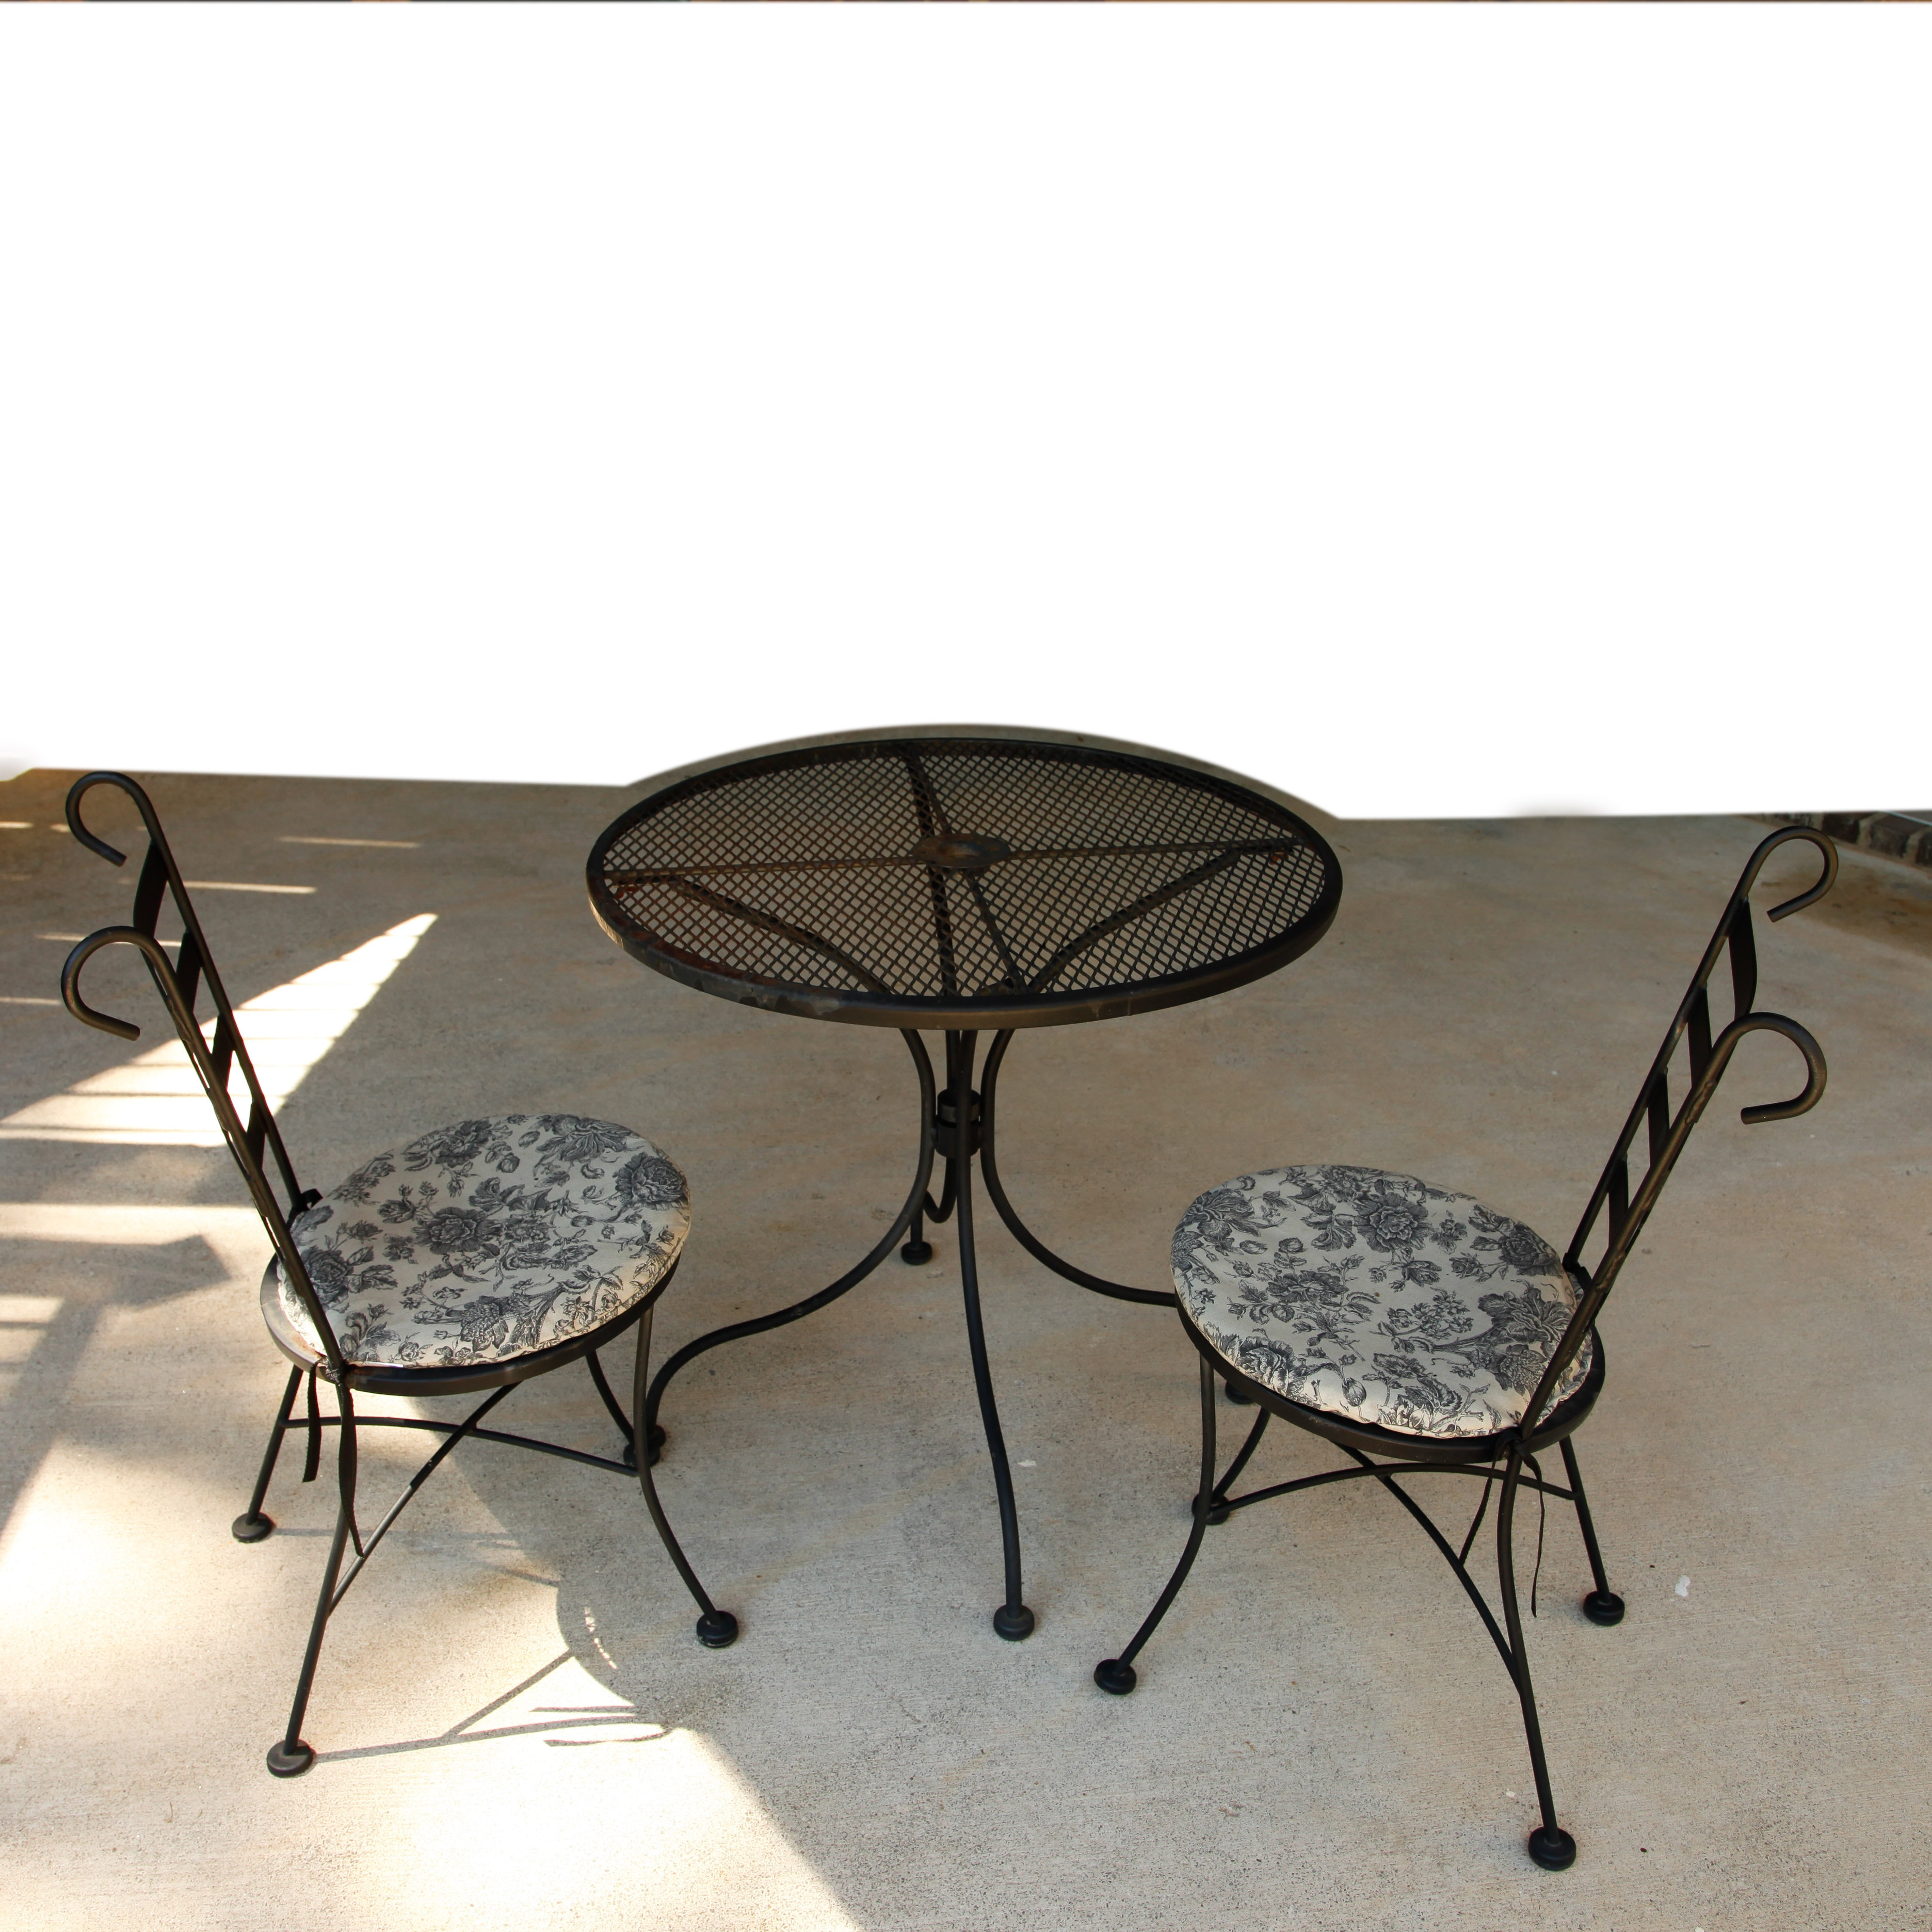 Attractive Plantation Patterns Patio Furniture #7: Vintage Plantation Patterns Wrought Iron Patio Table And Chairs ...